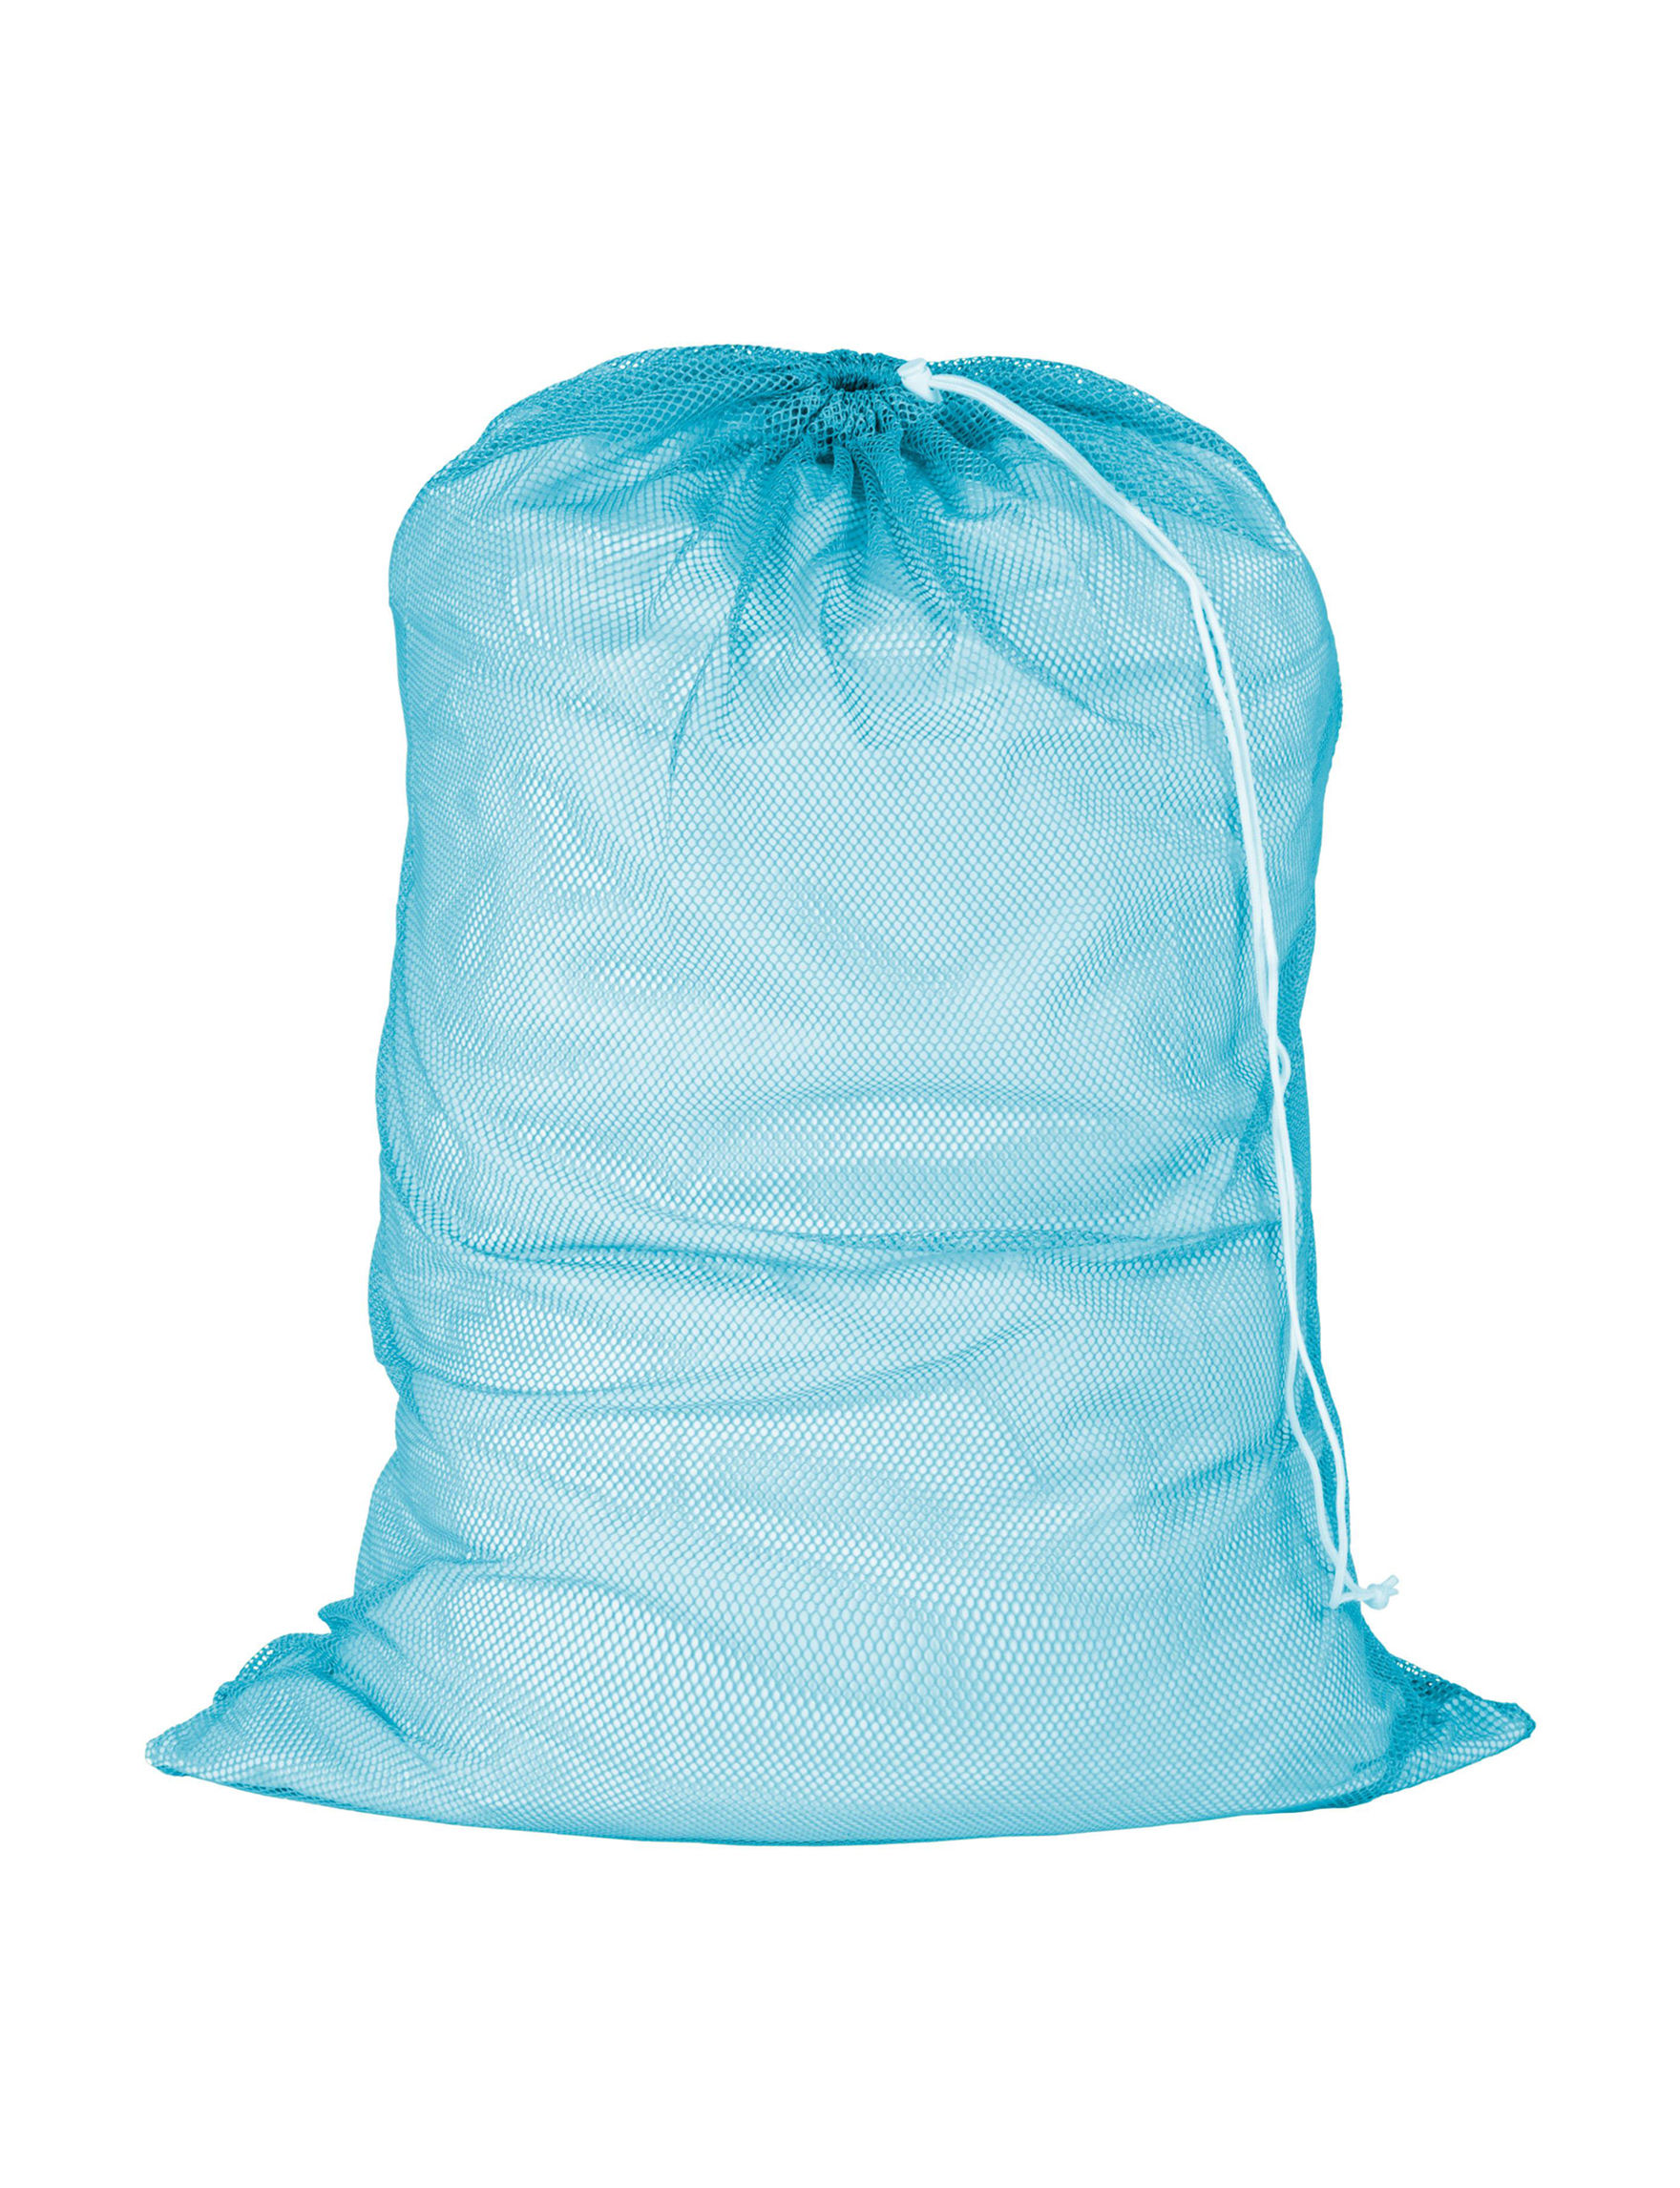 Honey-Can-Do International Blue Garment & Drying Racks Storage Bags & Boxes Irons & Clothing Care